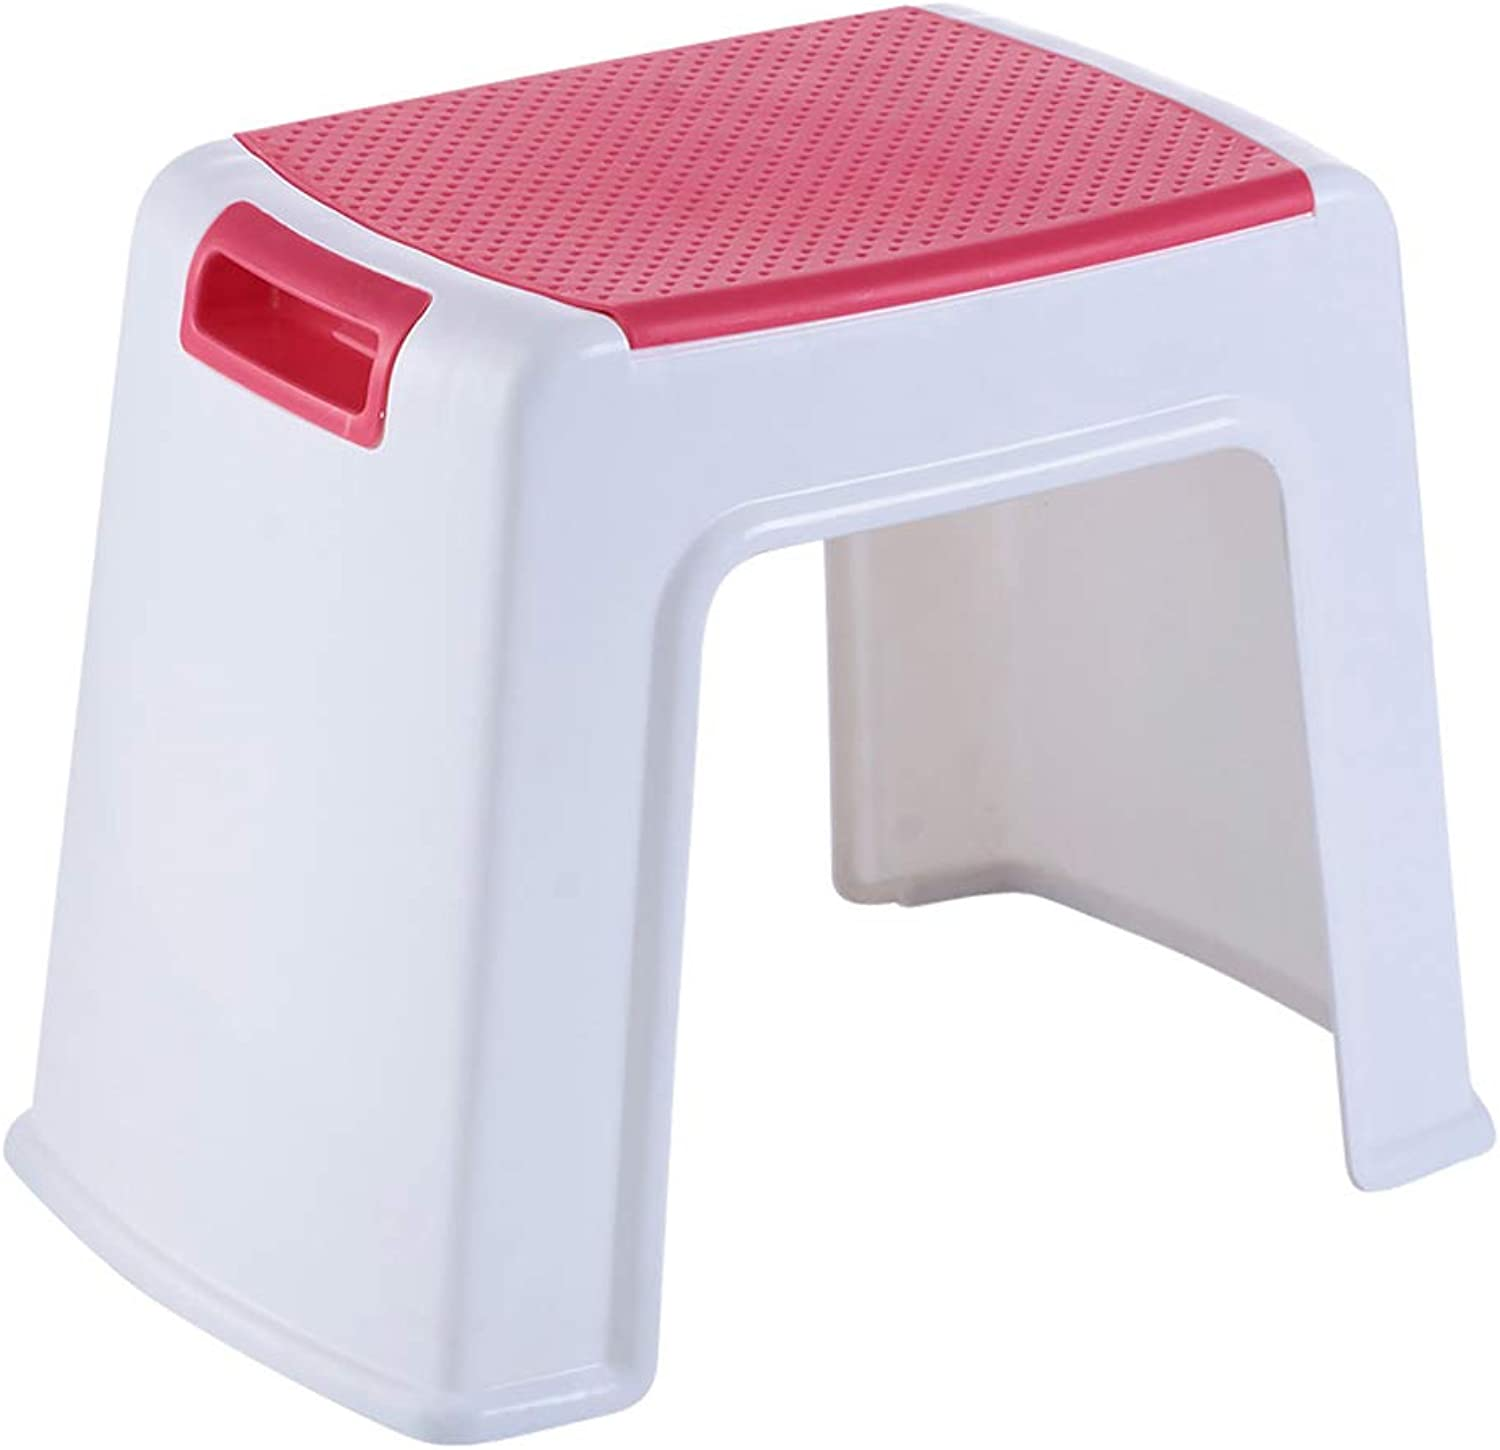 Small Plastic Step Stool On Light Thicken Reinforce Non-Slip 0.75KG 1.65LBS